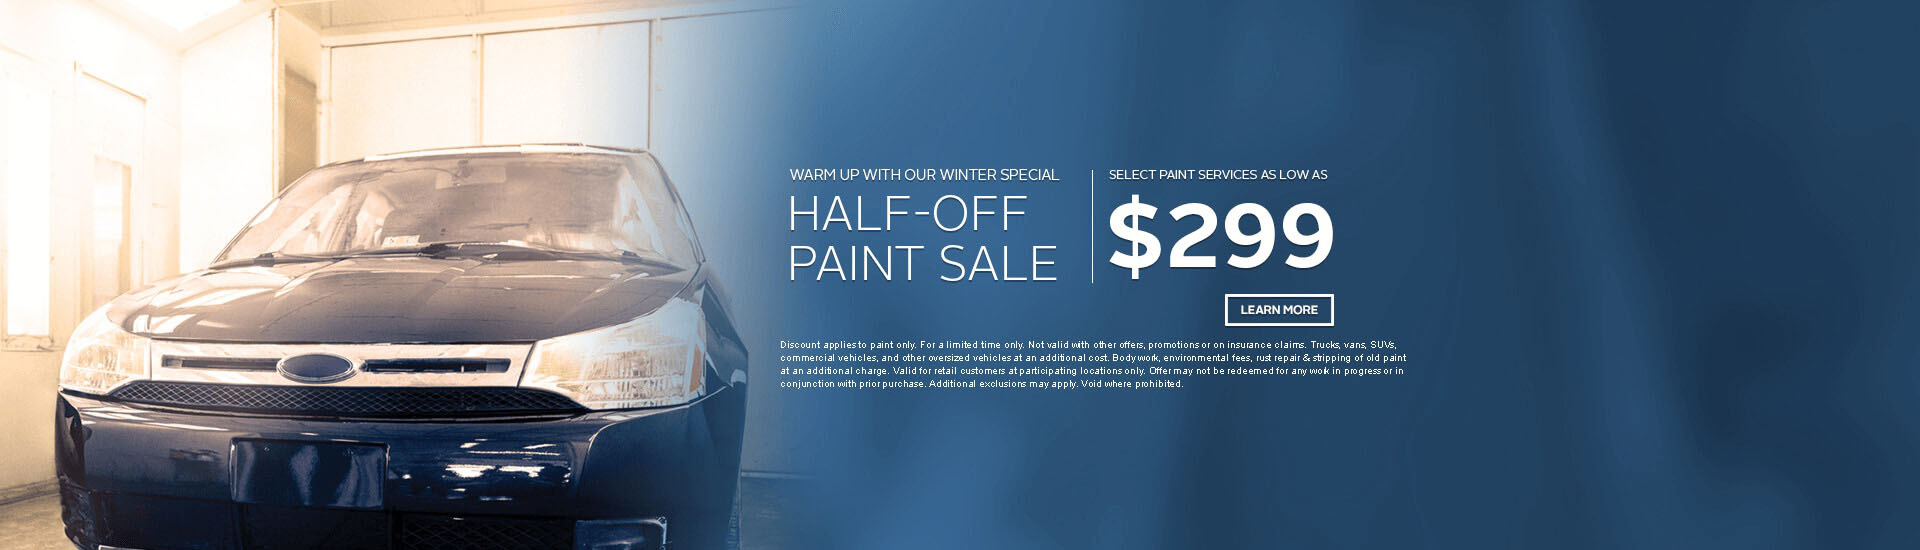 Maaco: Half-Off Paint Sale starting at: $299, click Learn More for further details.